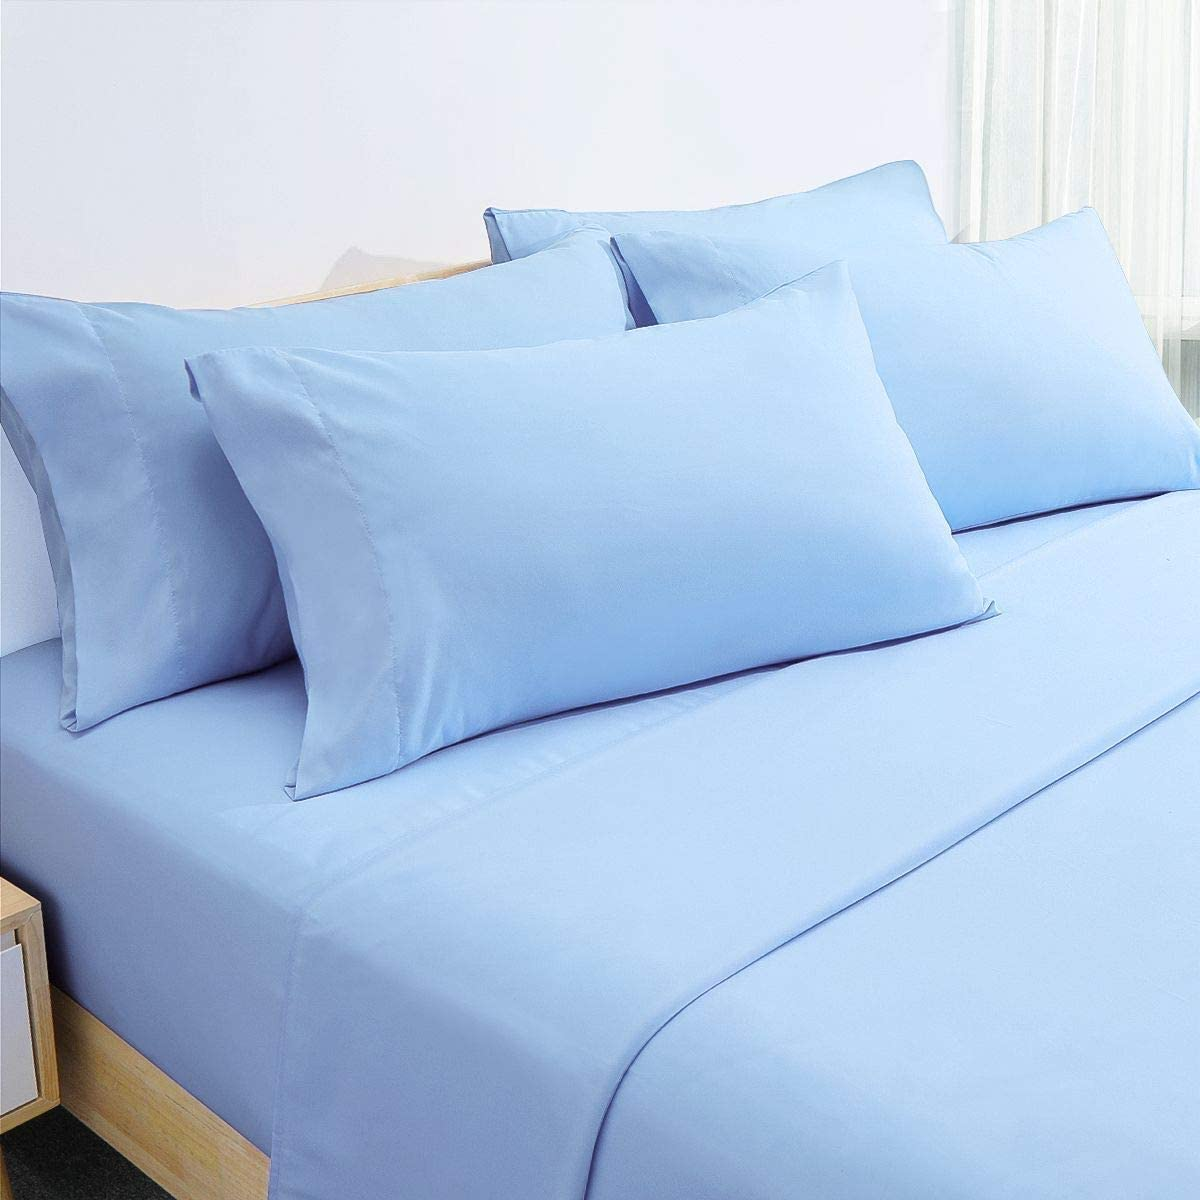 Deep Pocket Twin XL,Aqua Blue 3 Piece Wrinkle /& Fade Free Hypoallergenic HOMEIDEAS Bed Sheets Set Extra Soft Brushed Microfiber 1800 Bedding Sheets